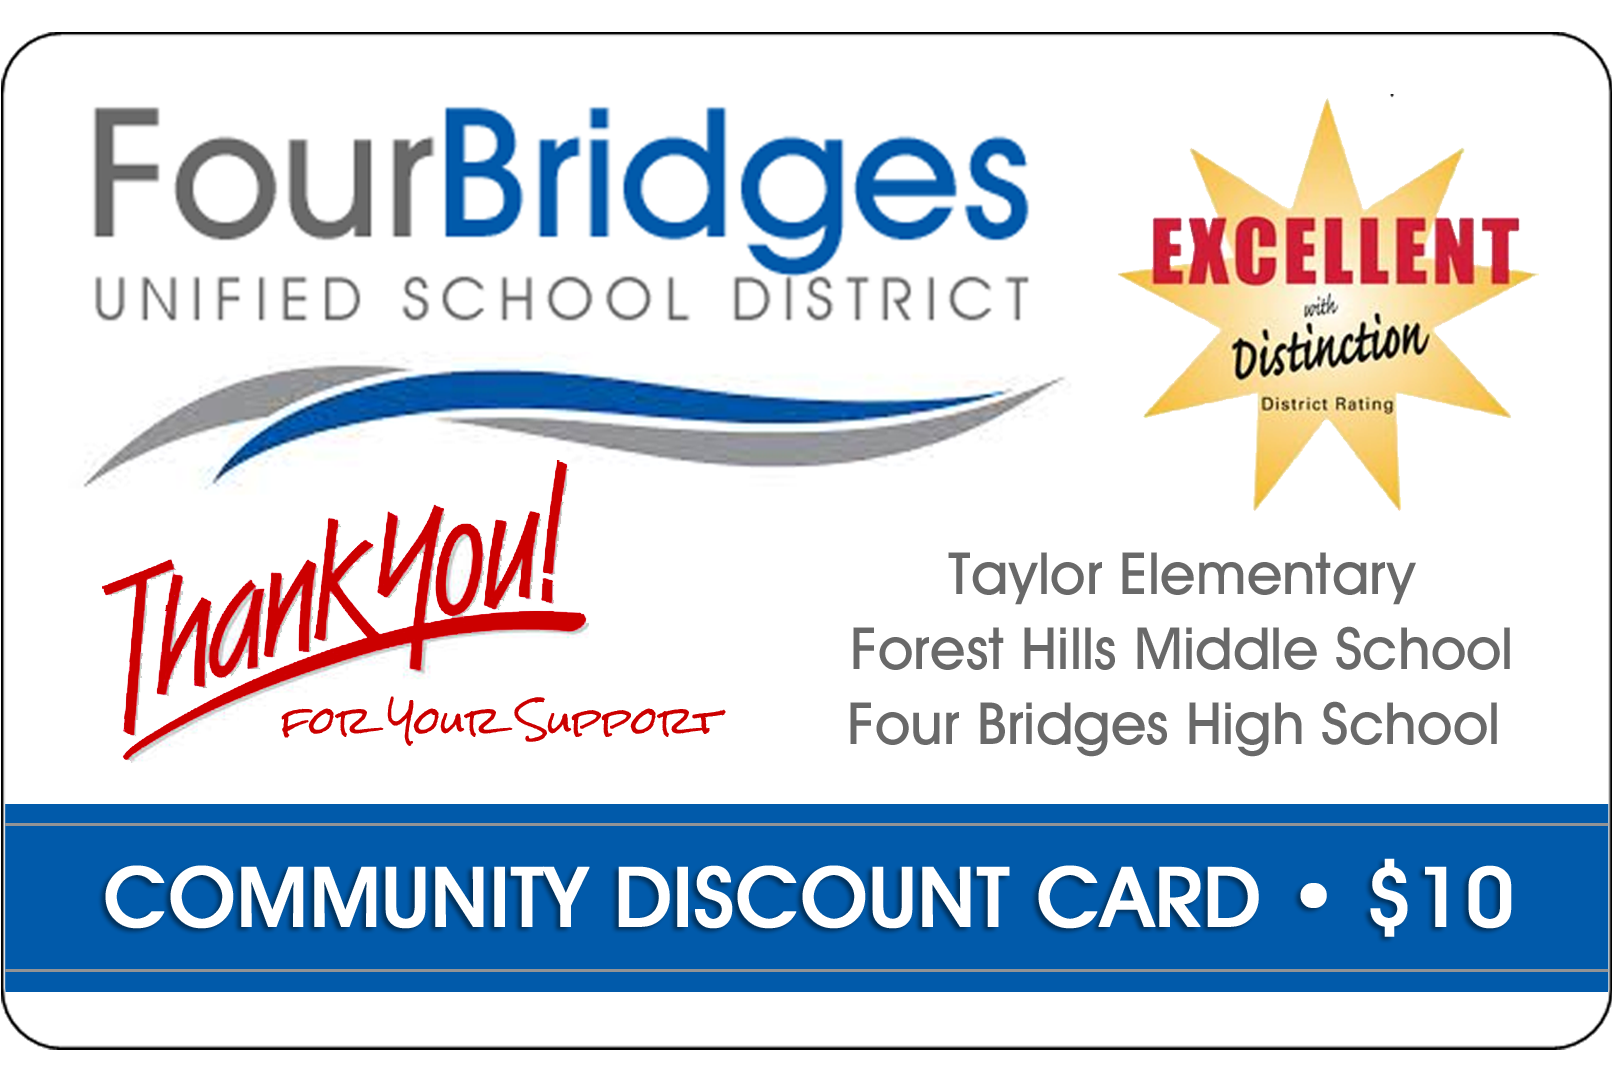 school-district-discount-card-fundraiser | big fundraising ideas